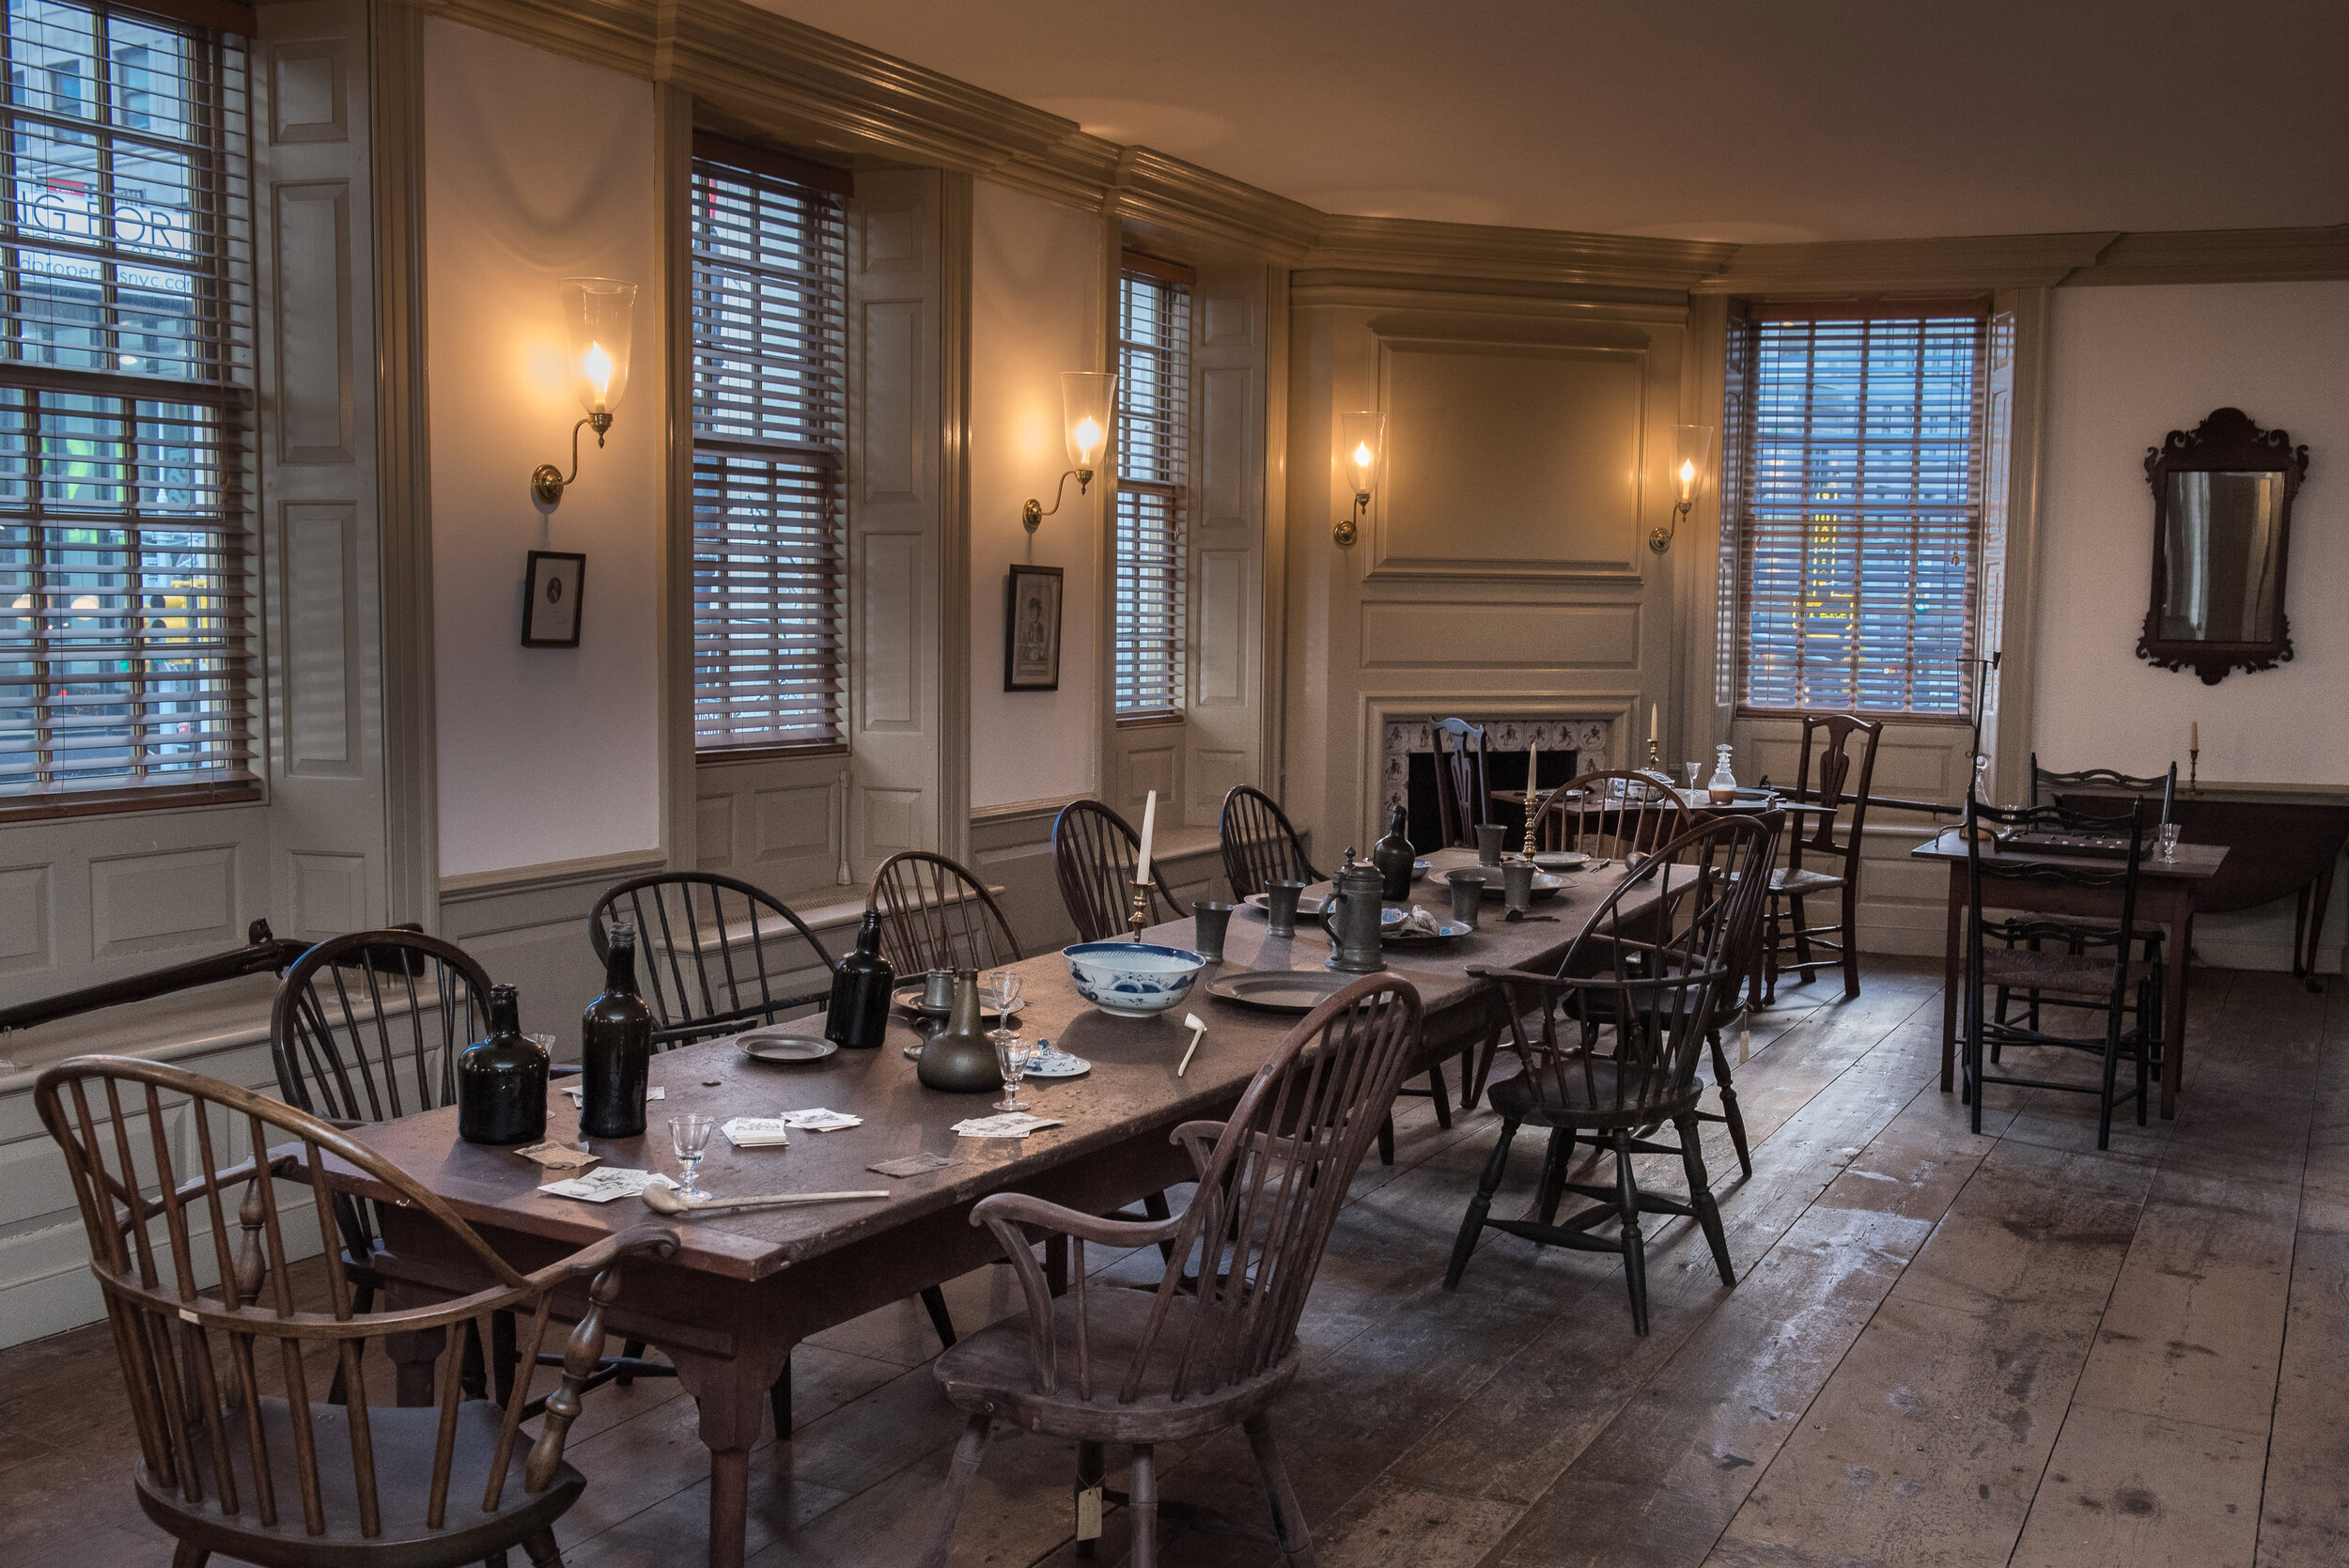 Drink to history - and discover New york' City's revolutionary past